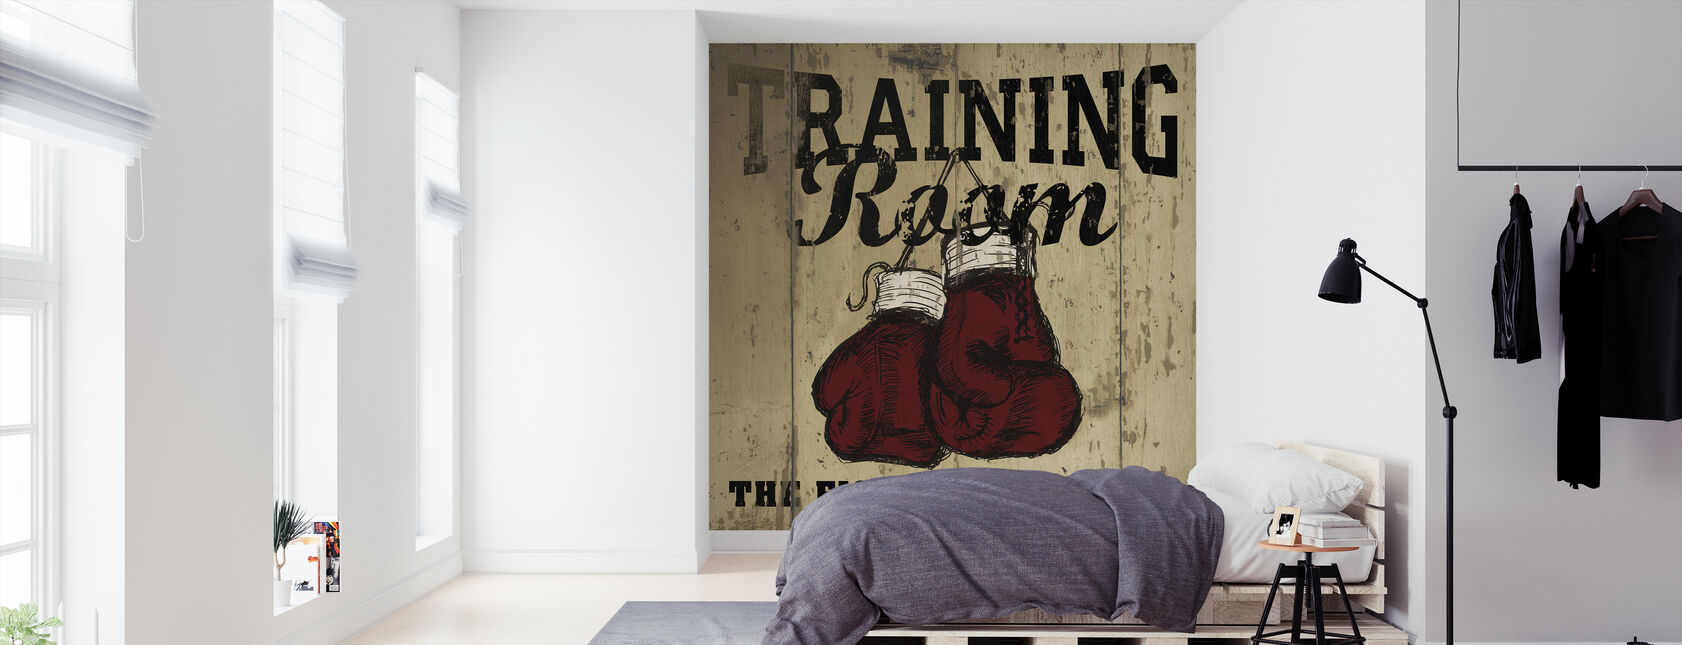 Training Room - Wallpaper - Bedroom